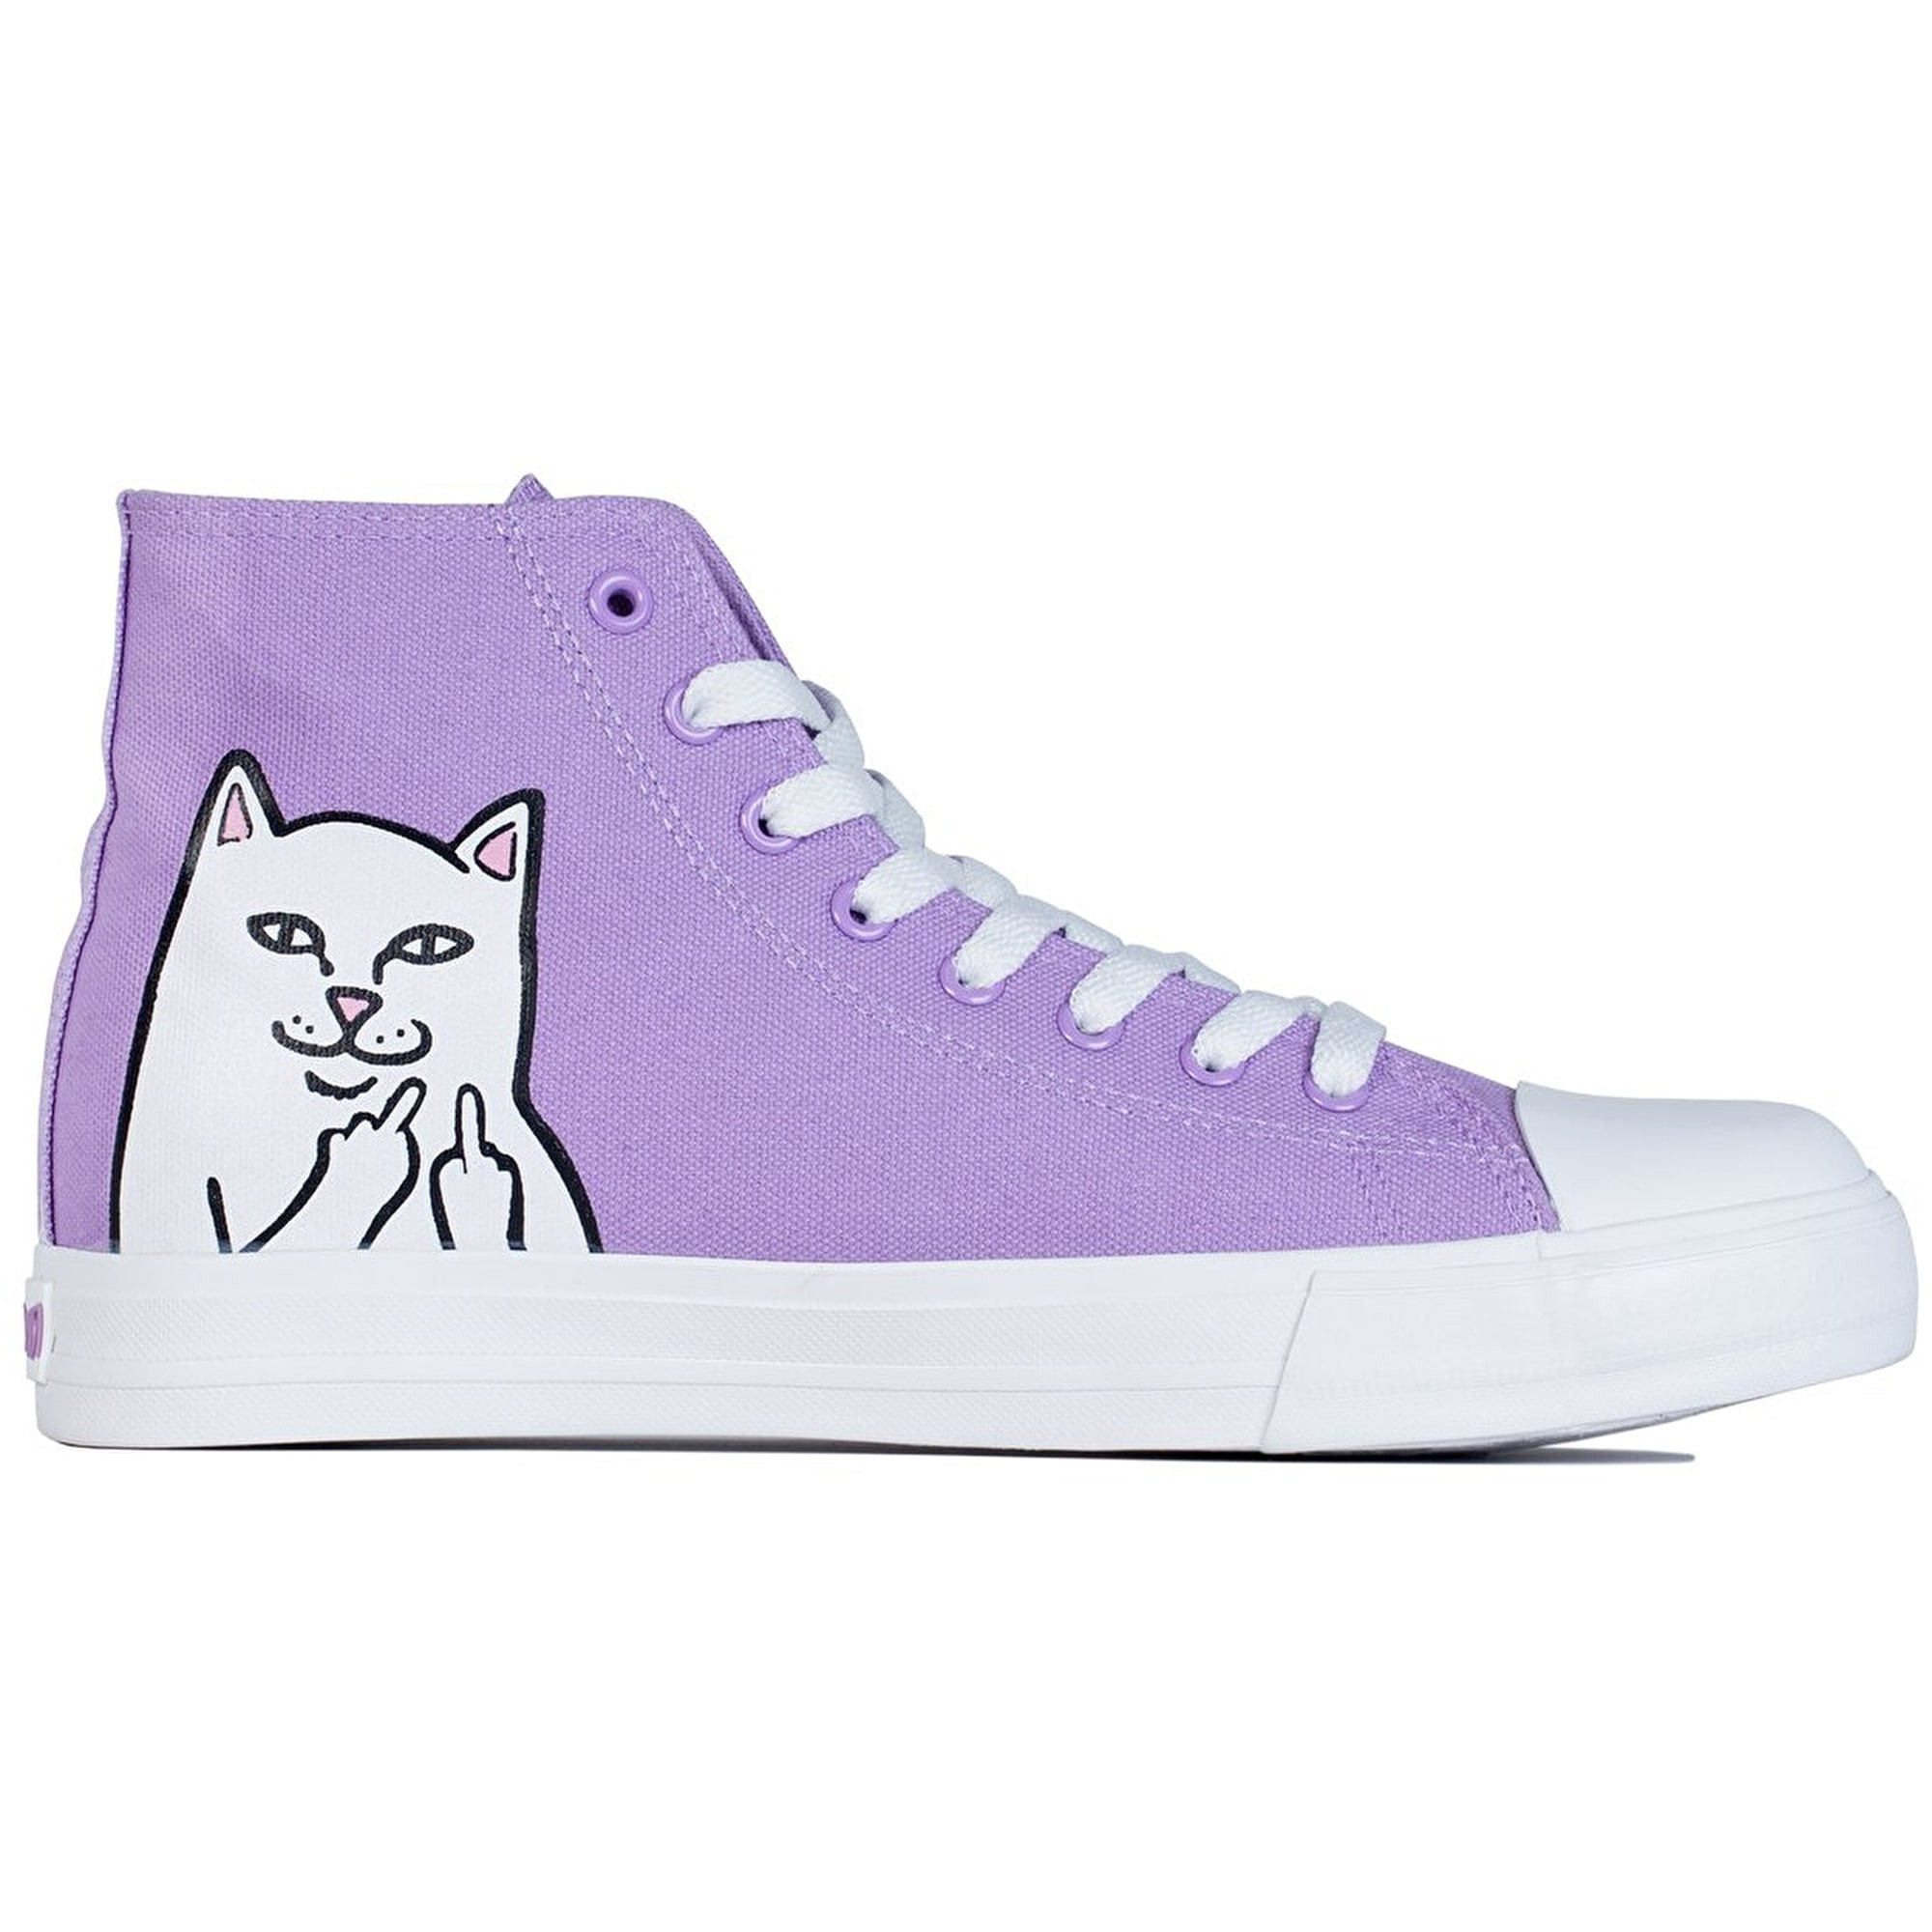 Ripndip Nerm High Top Skate Shoes Lavender Ripndip